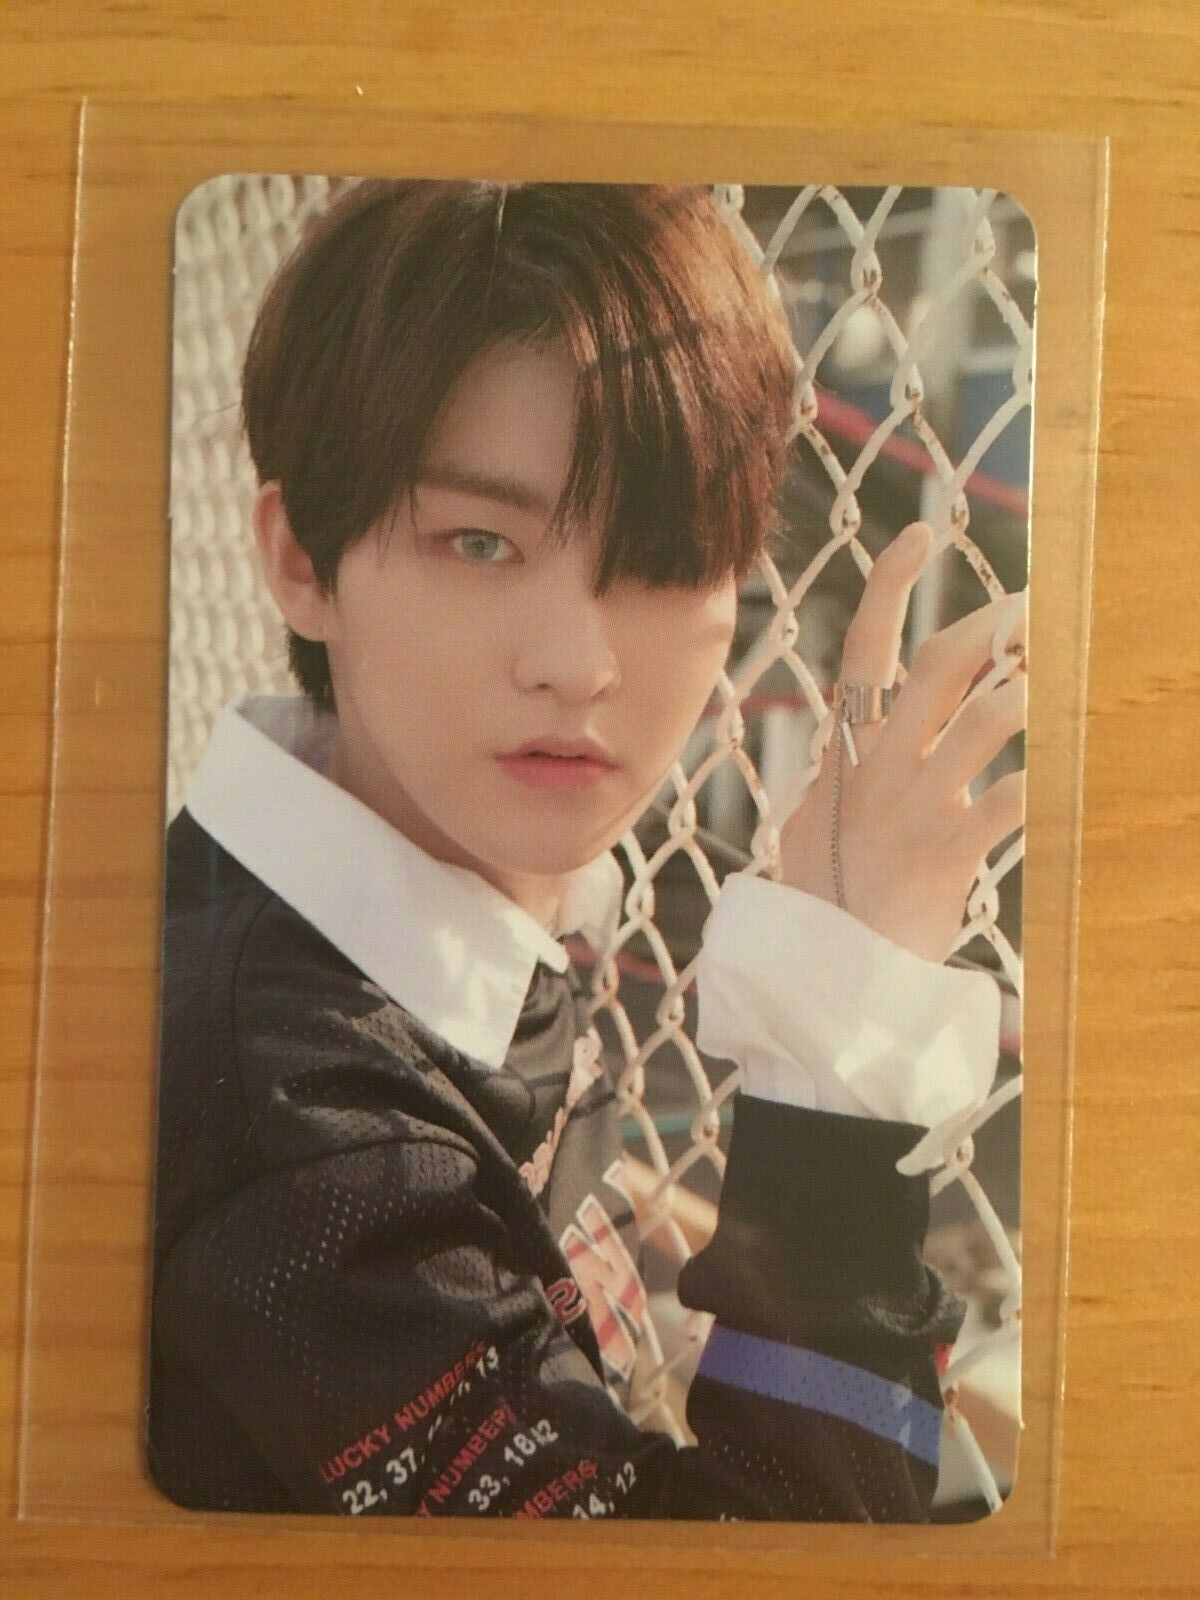 THE BOYZ - DREAMLIKE Official Photocards (MMT -limited- + DREAMLIKE + DAY + DIY) Hwall [MMT Signed]